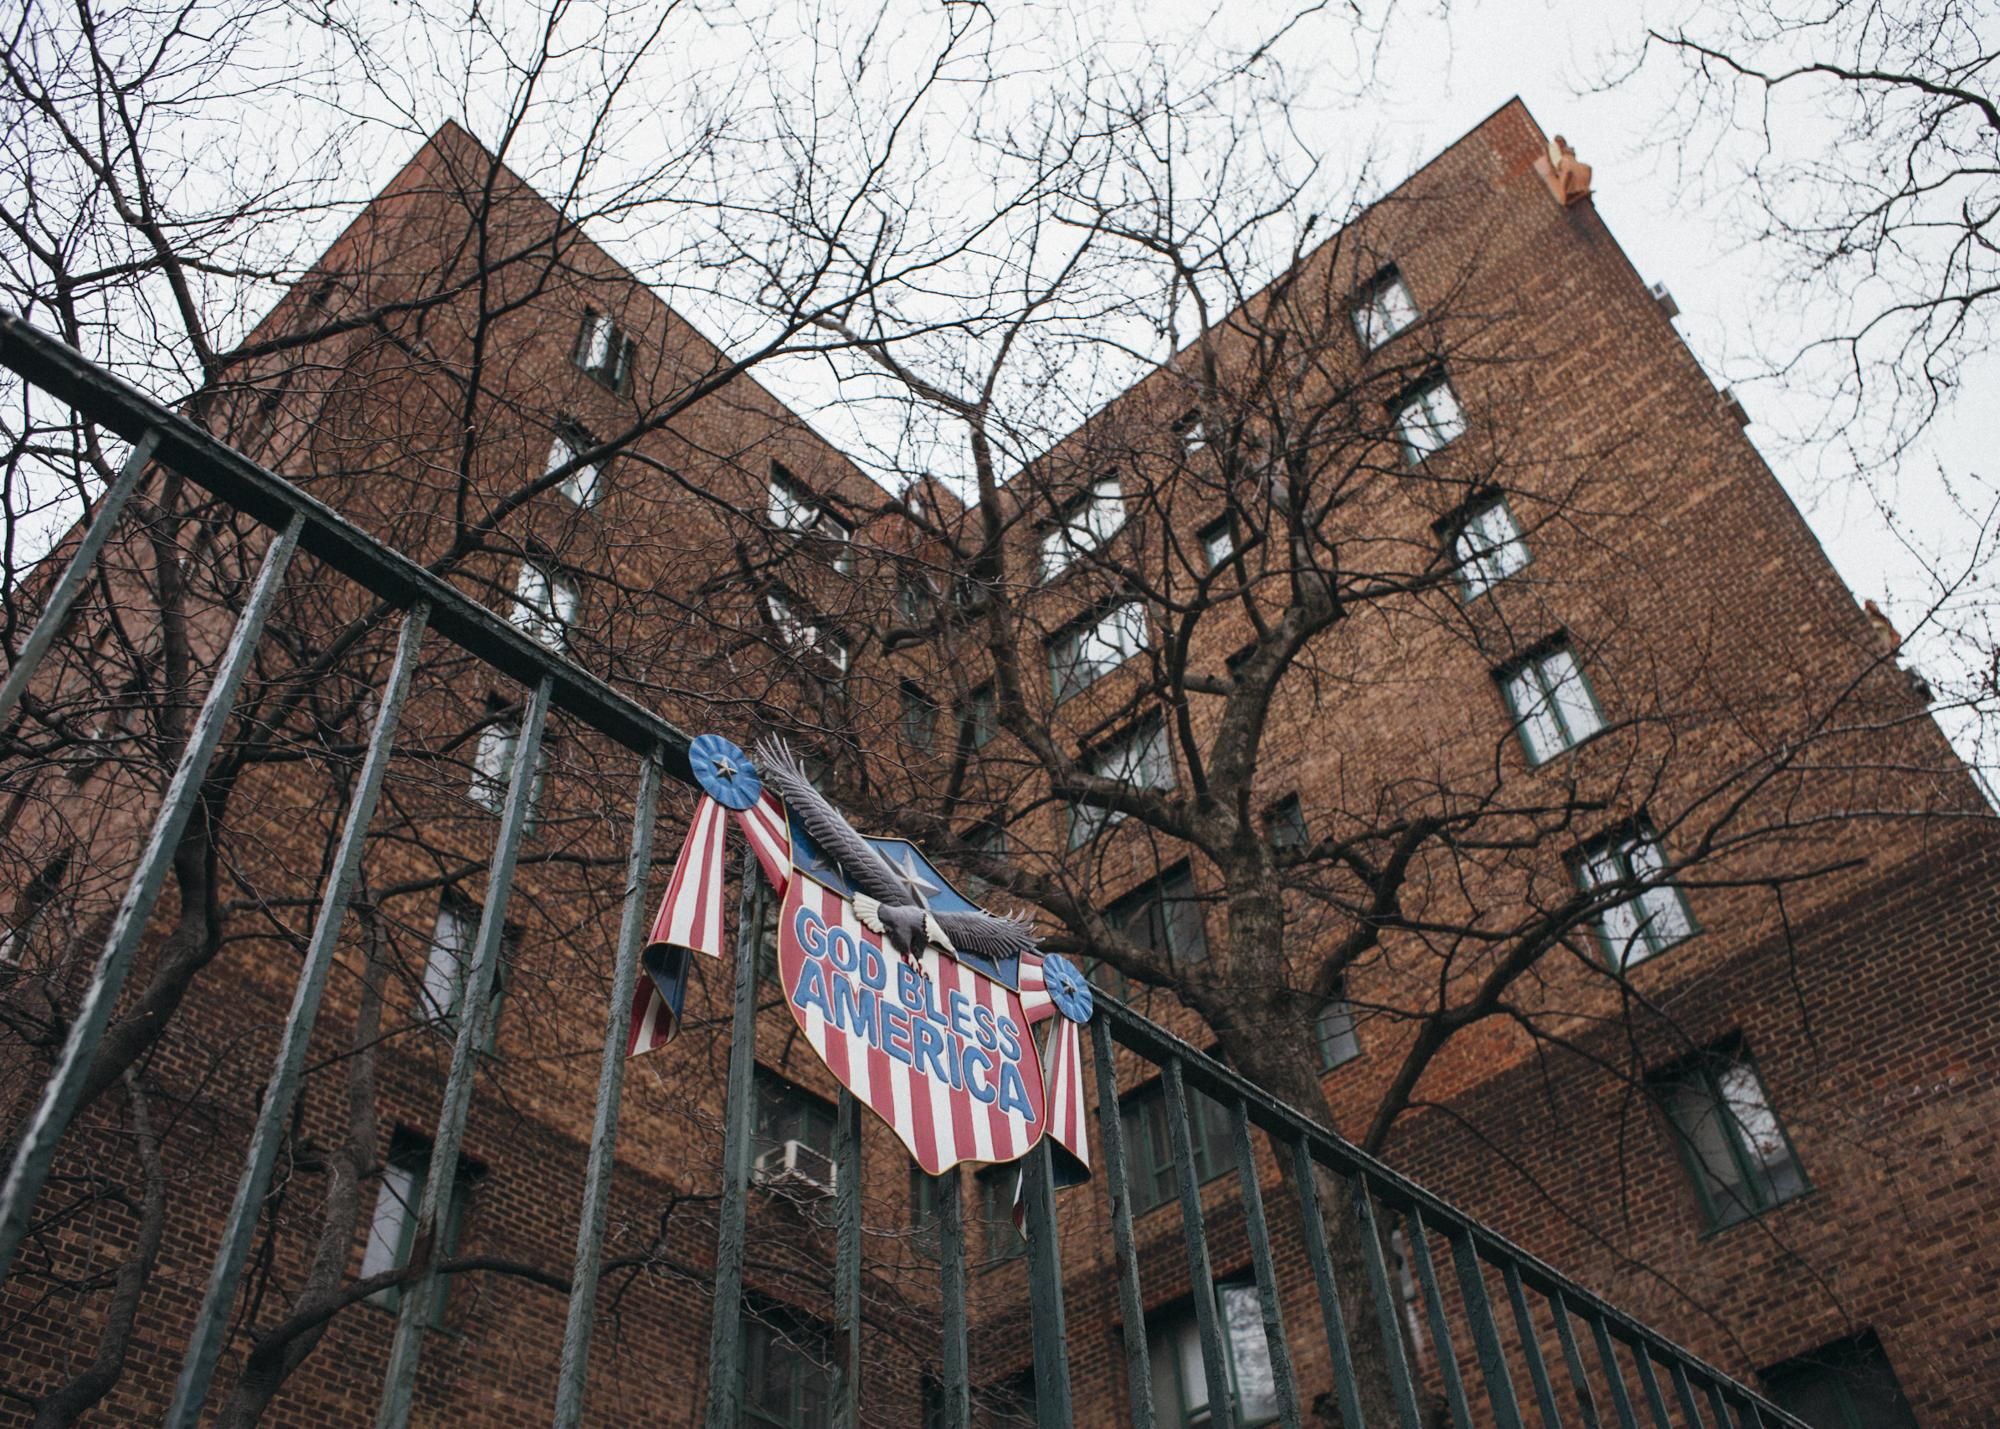 A view of one of the buildings that make up much of neighborhood Parkchester, the same neighborhood Alexandria was born and where her campaign took its first steps, in The Bronx neighborhood of New York City, April 6, 2018.